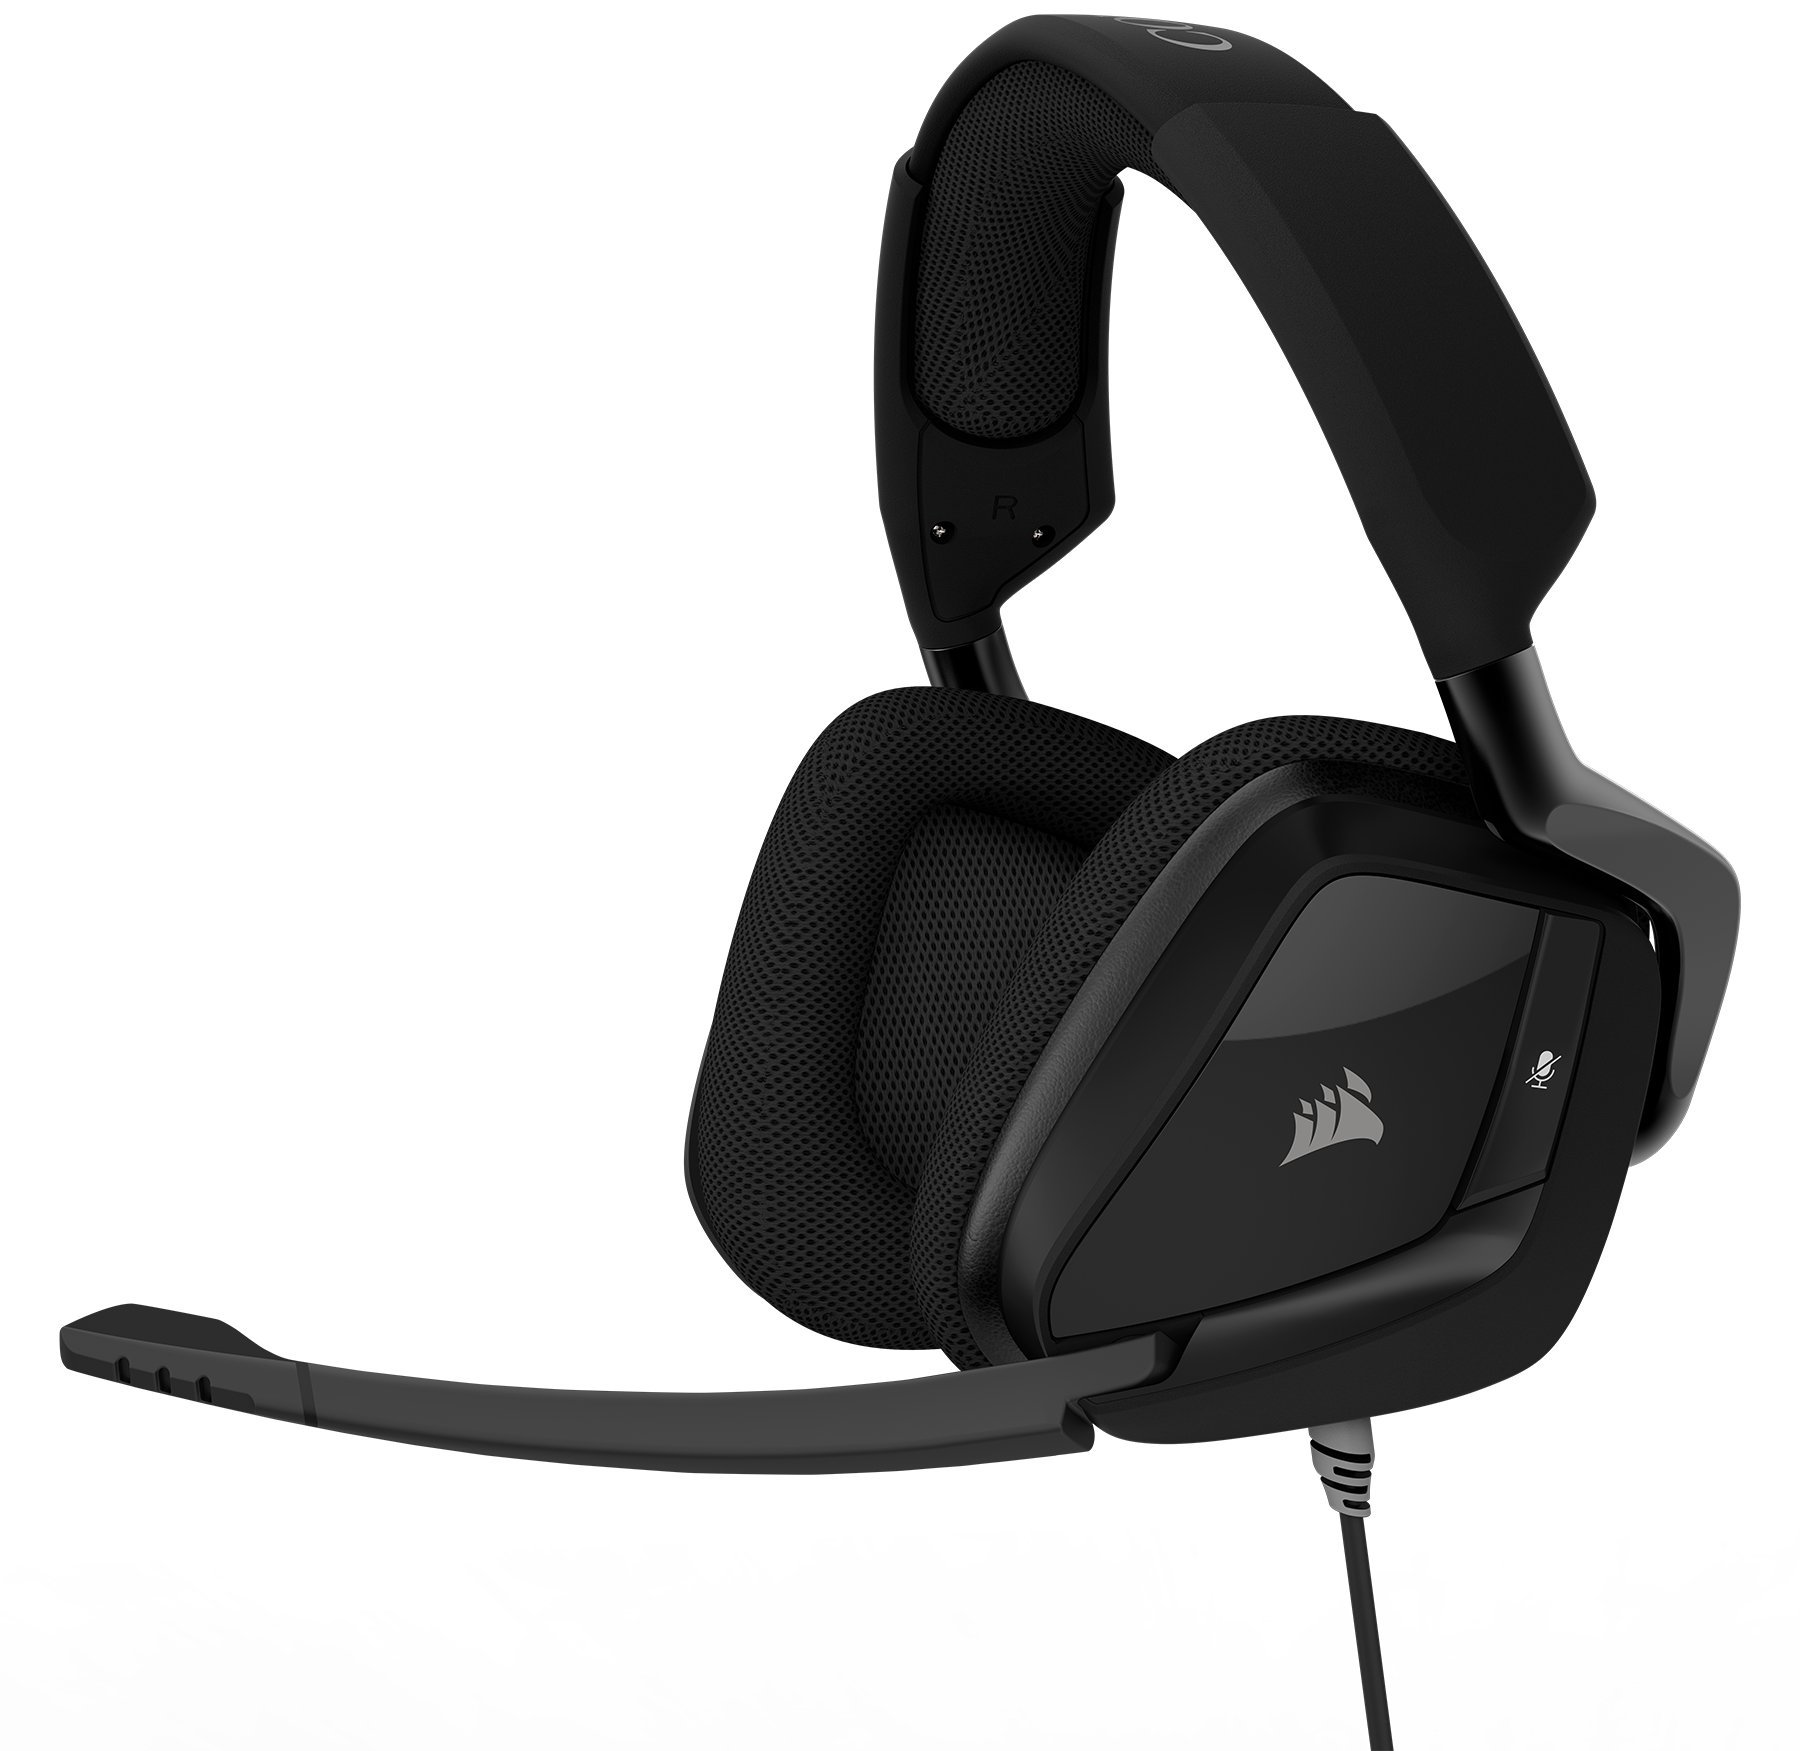 Corsair CA-9011156-NA Void Pro Gaming Headset with Dolby Headphone 7.1 Surround Sound for PC, PS4, Xbox One, Nintendo Switch, Android and iOS, Carbon